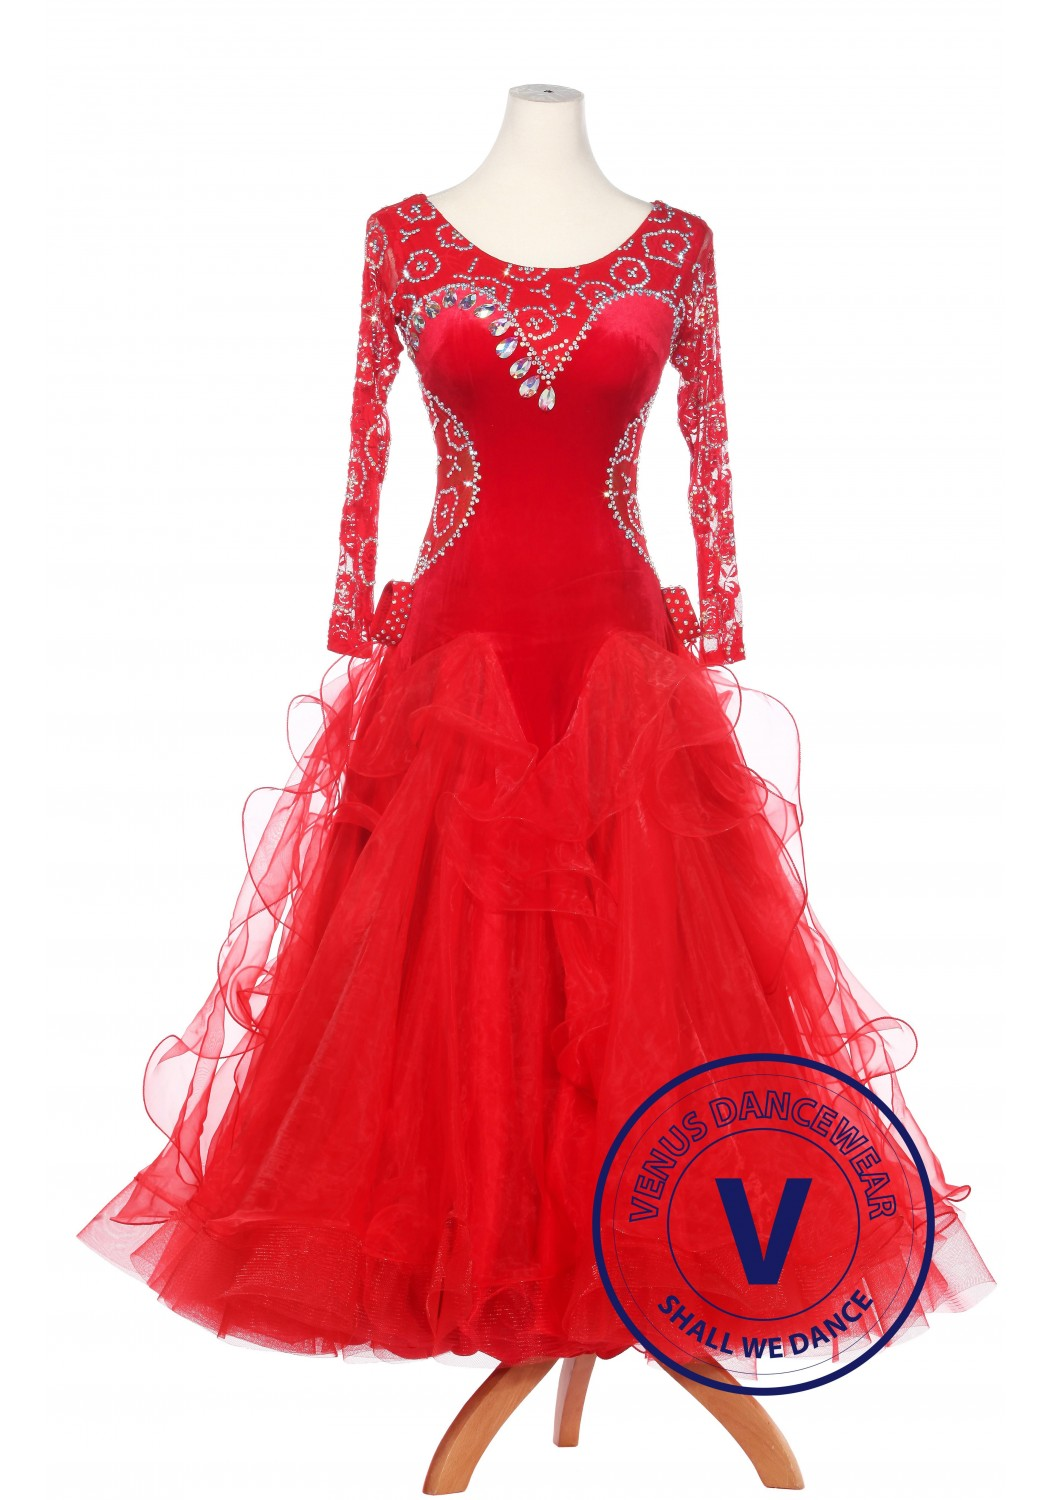 Red Velvet and Lace Standard Waltz Smooth Tango Ballroom Competition Dress